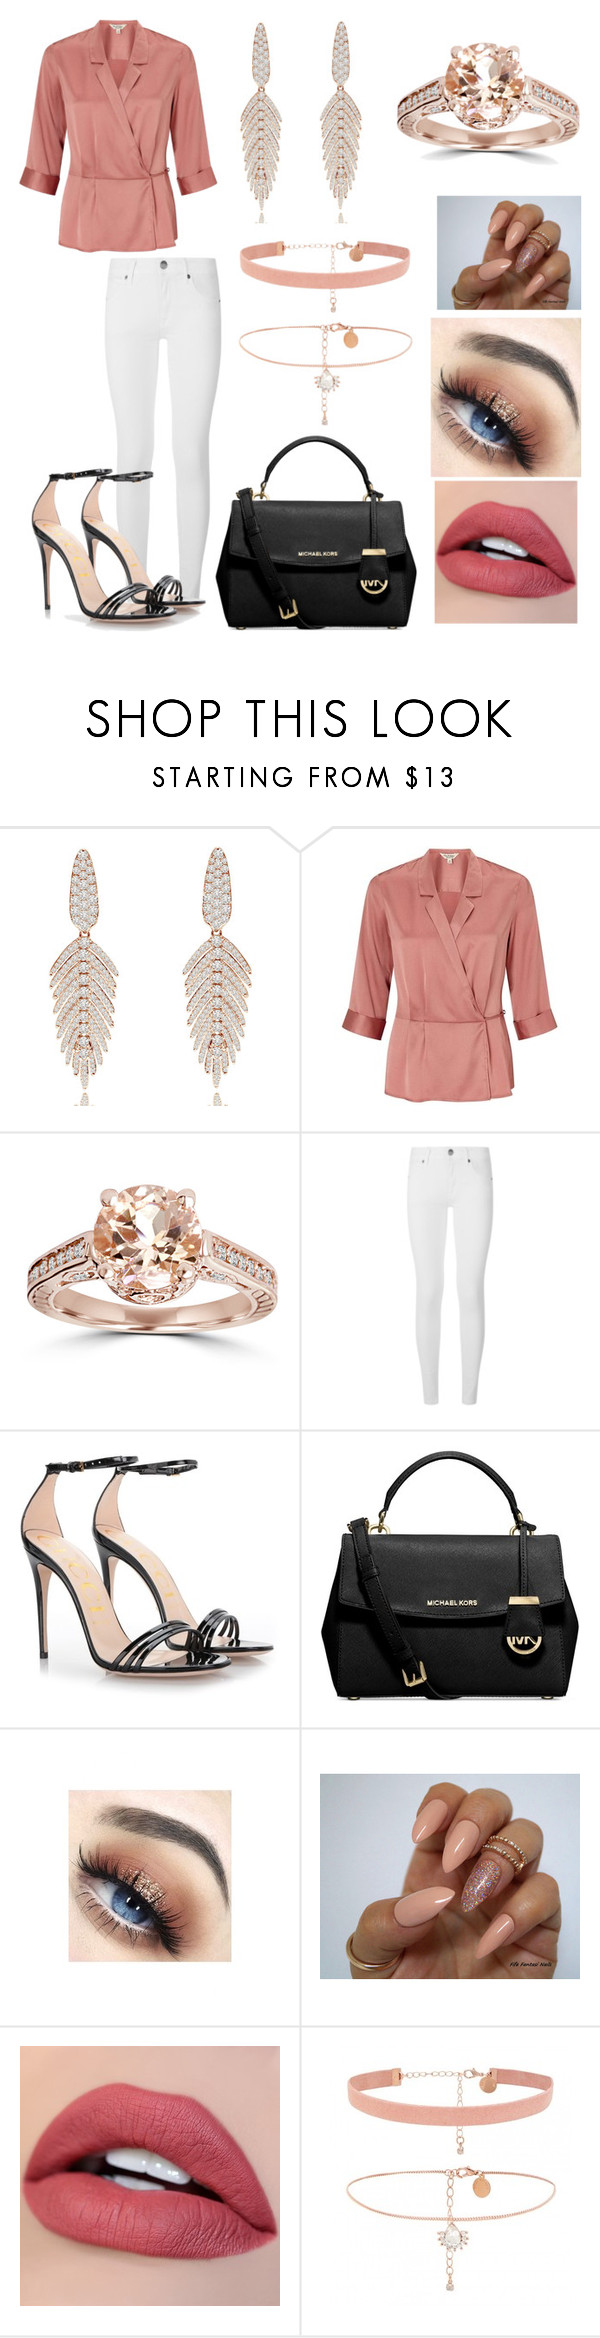 """""""16"""" by diana-azevedo-1 ❤ liked on Polyvore featuring Sutra, Miss Selfridge, Bliss Diamond, Burberry, Gucci and Michael Kors"""